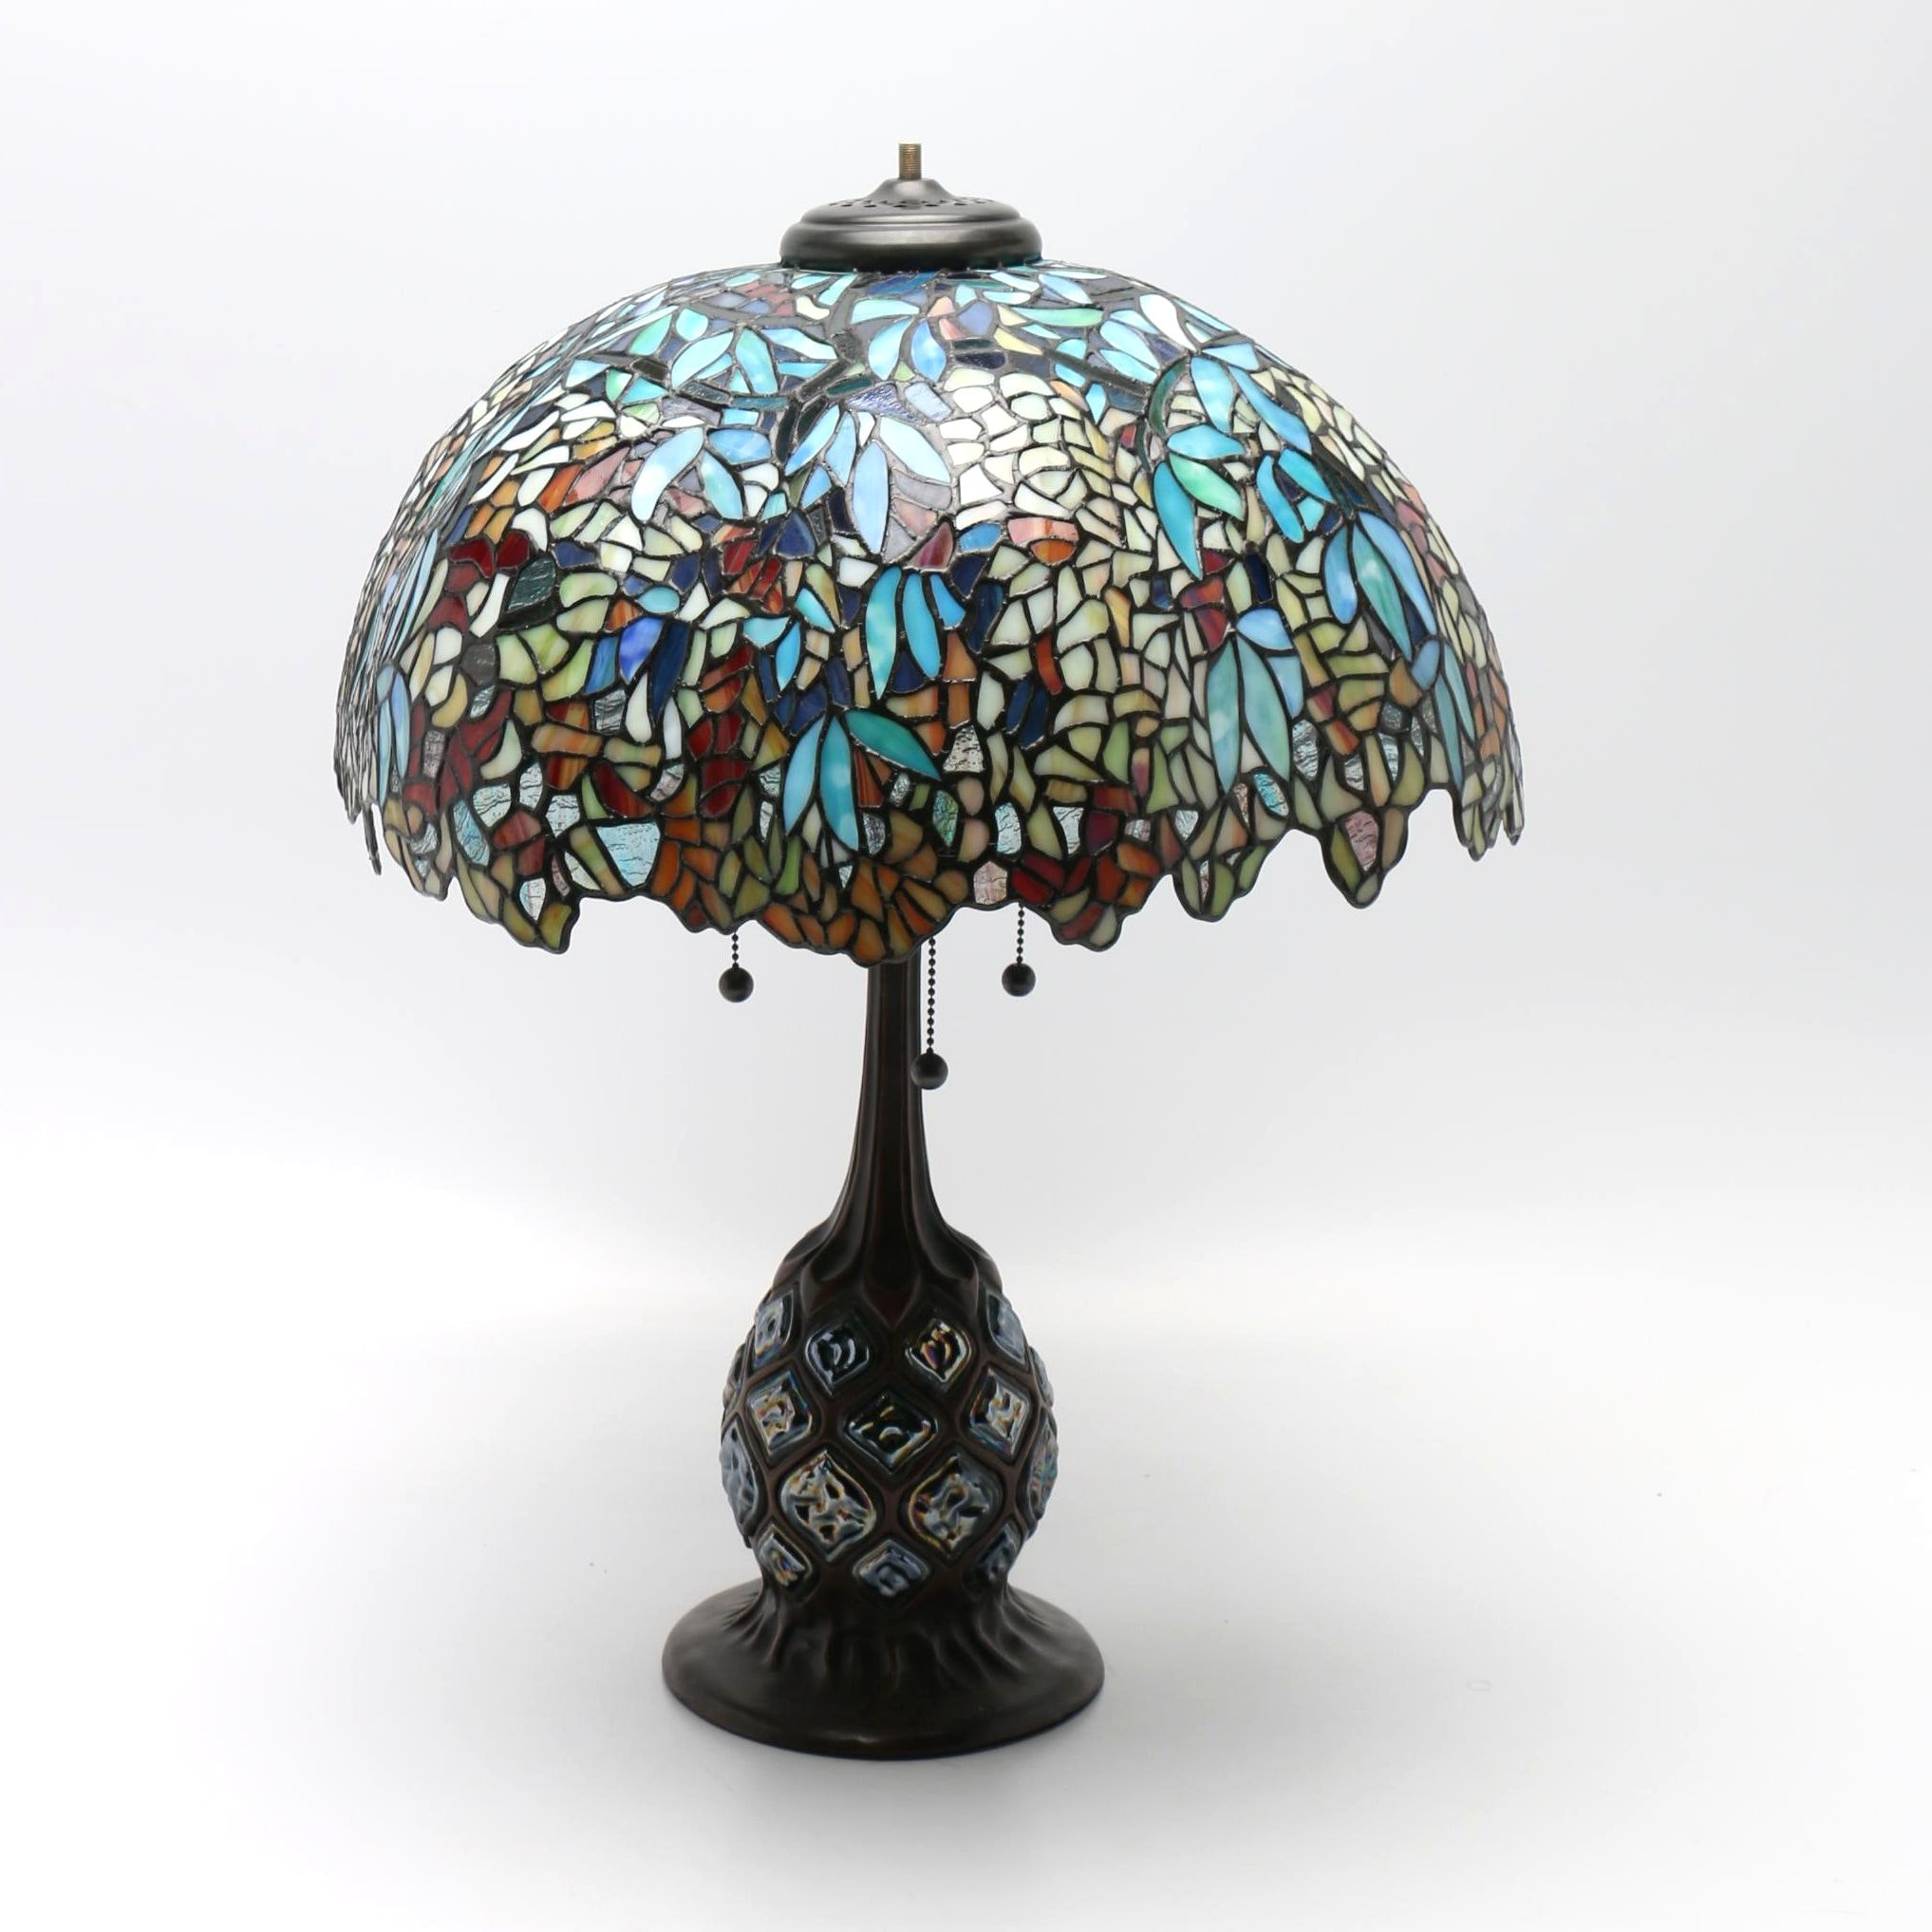 Tiffany Inspired Leaded Stained Glass Lamp